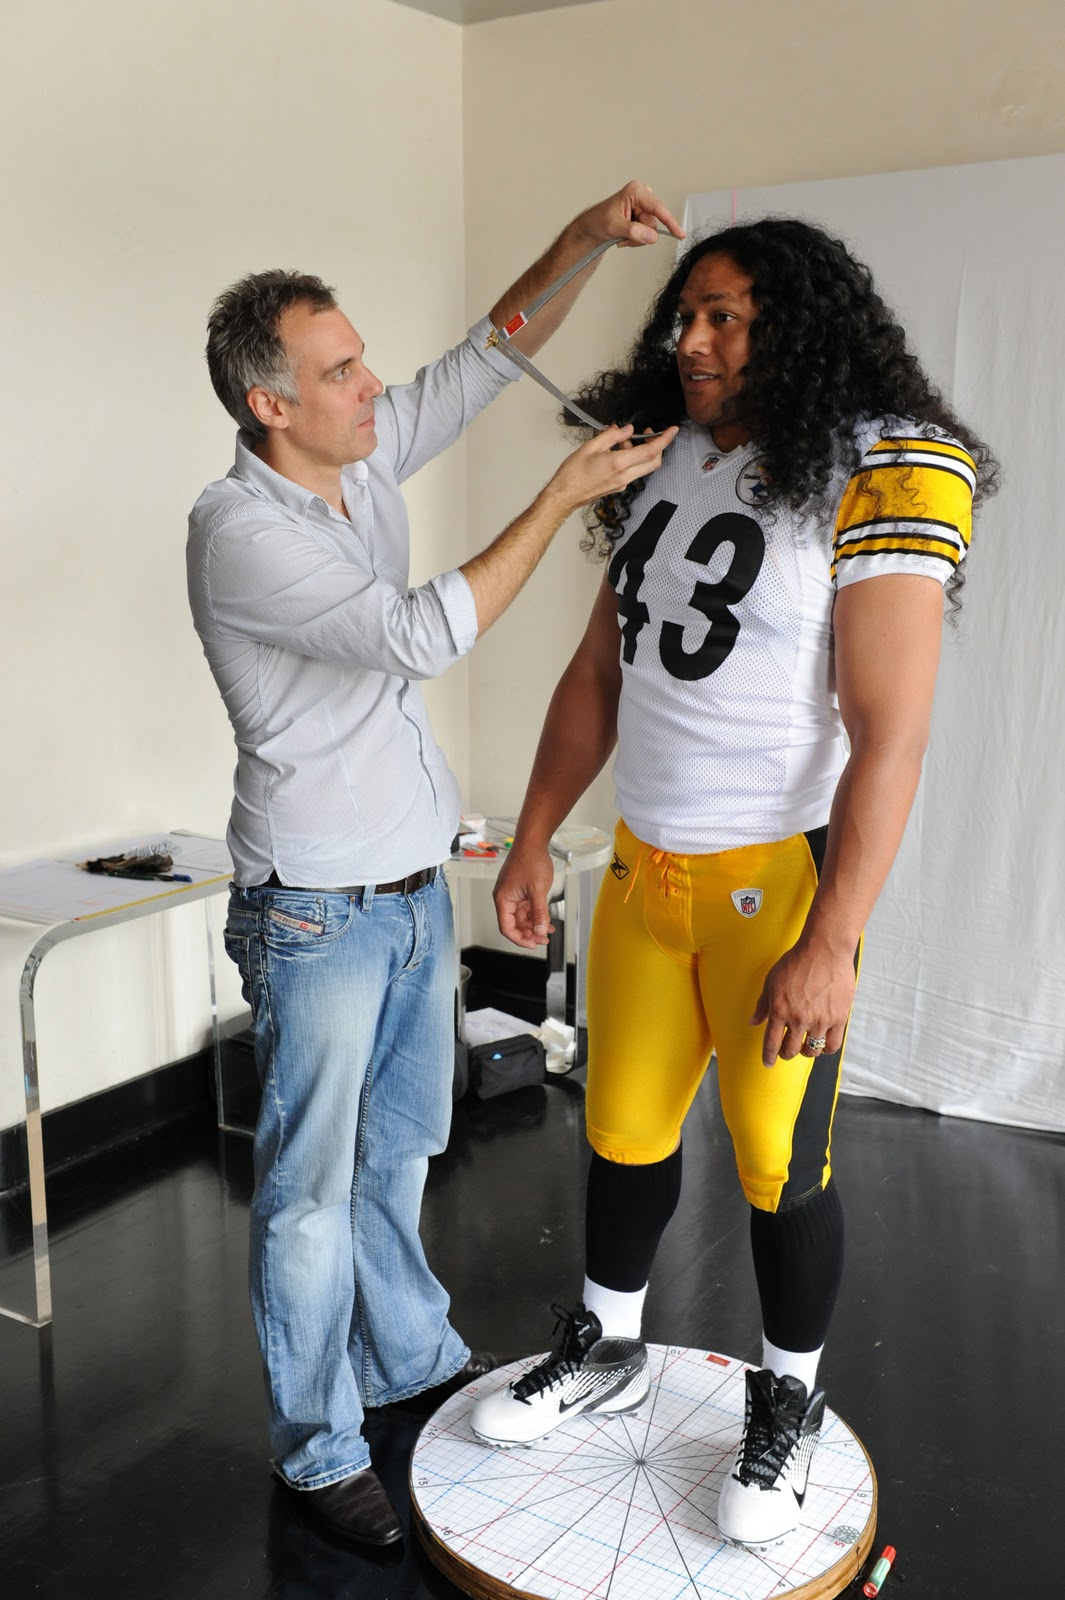 Uni Watch talks to Ben Roethlisberger other athletes about wearing